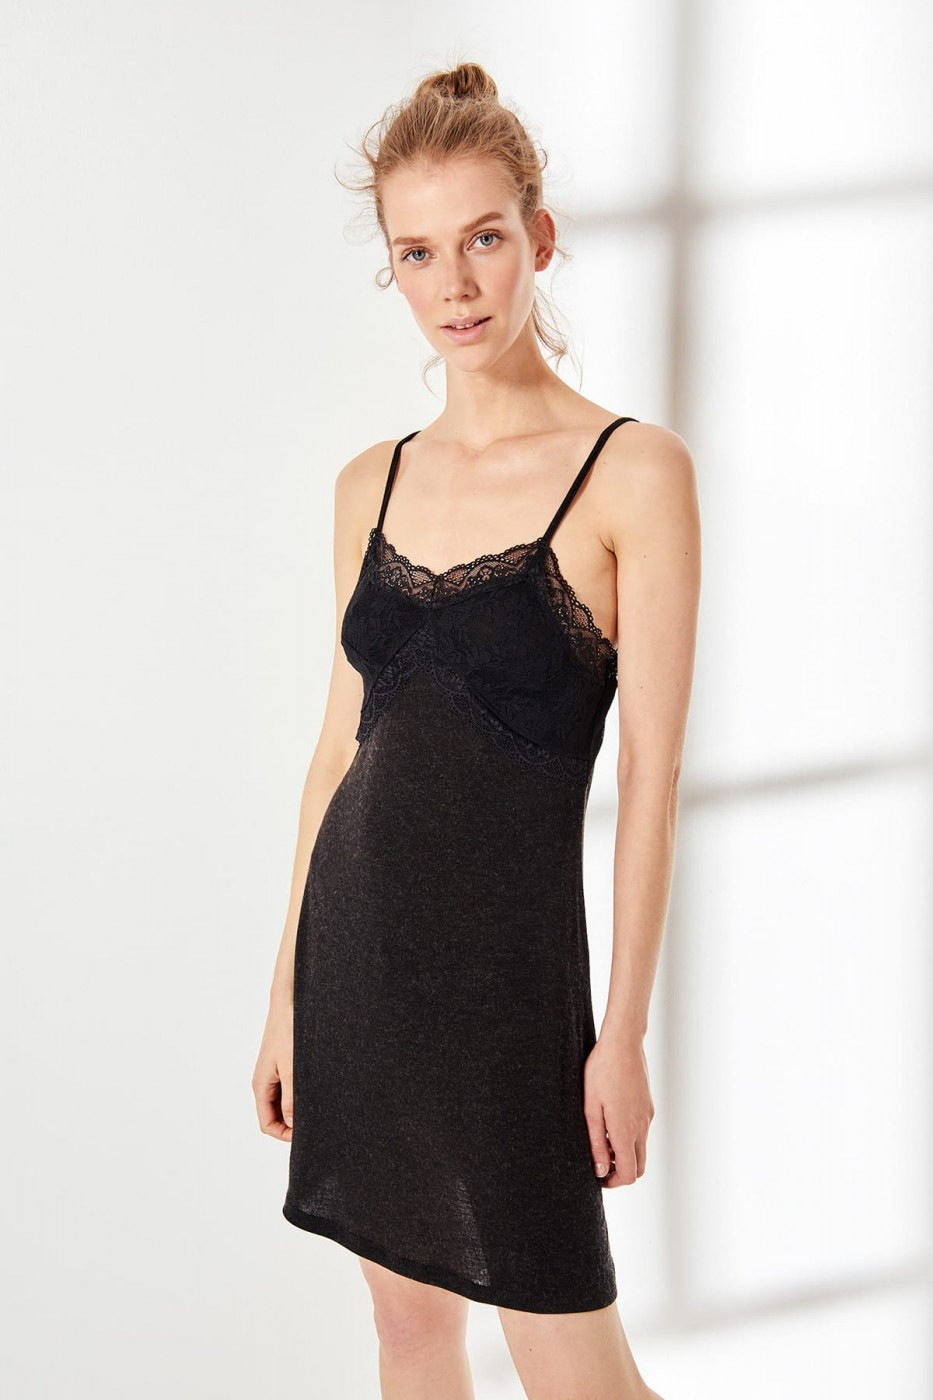 Trendyol Black ruched knitted nightgown dress